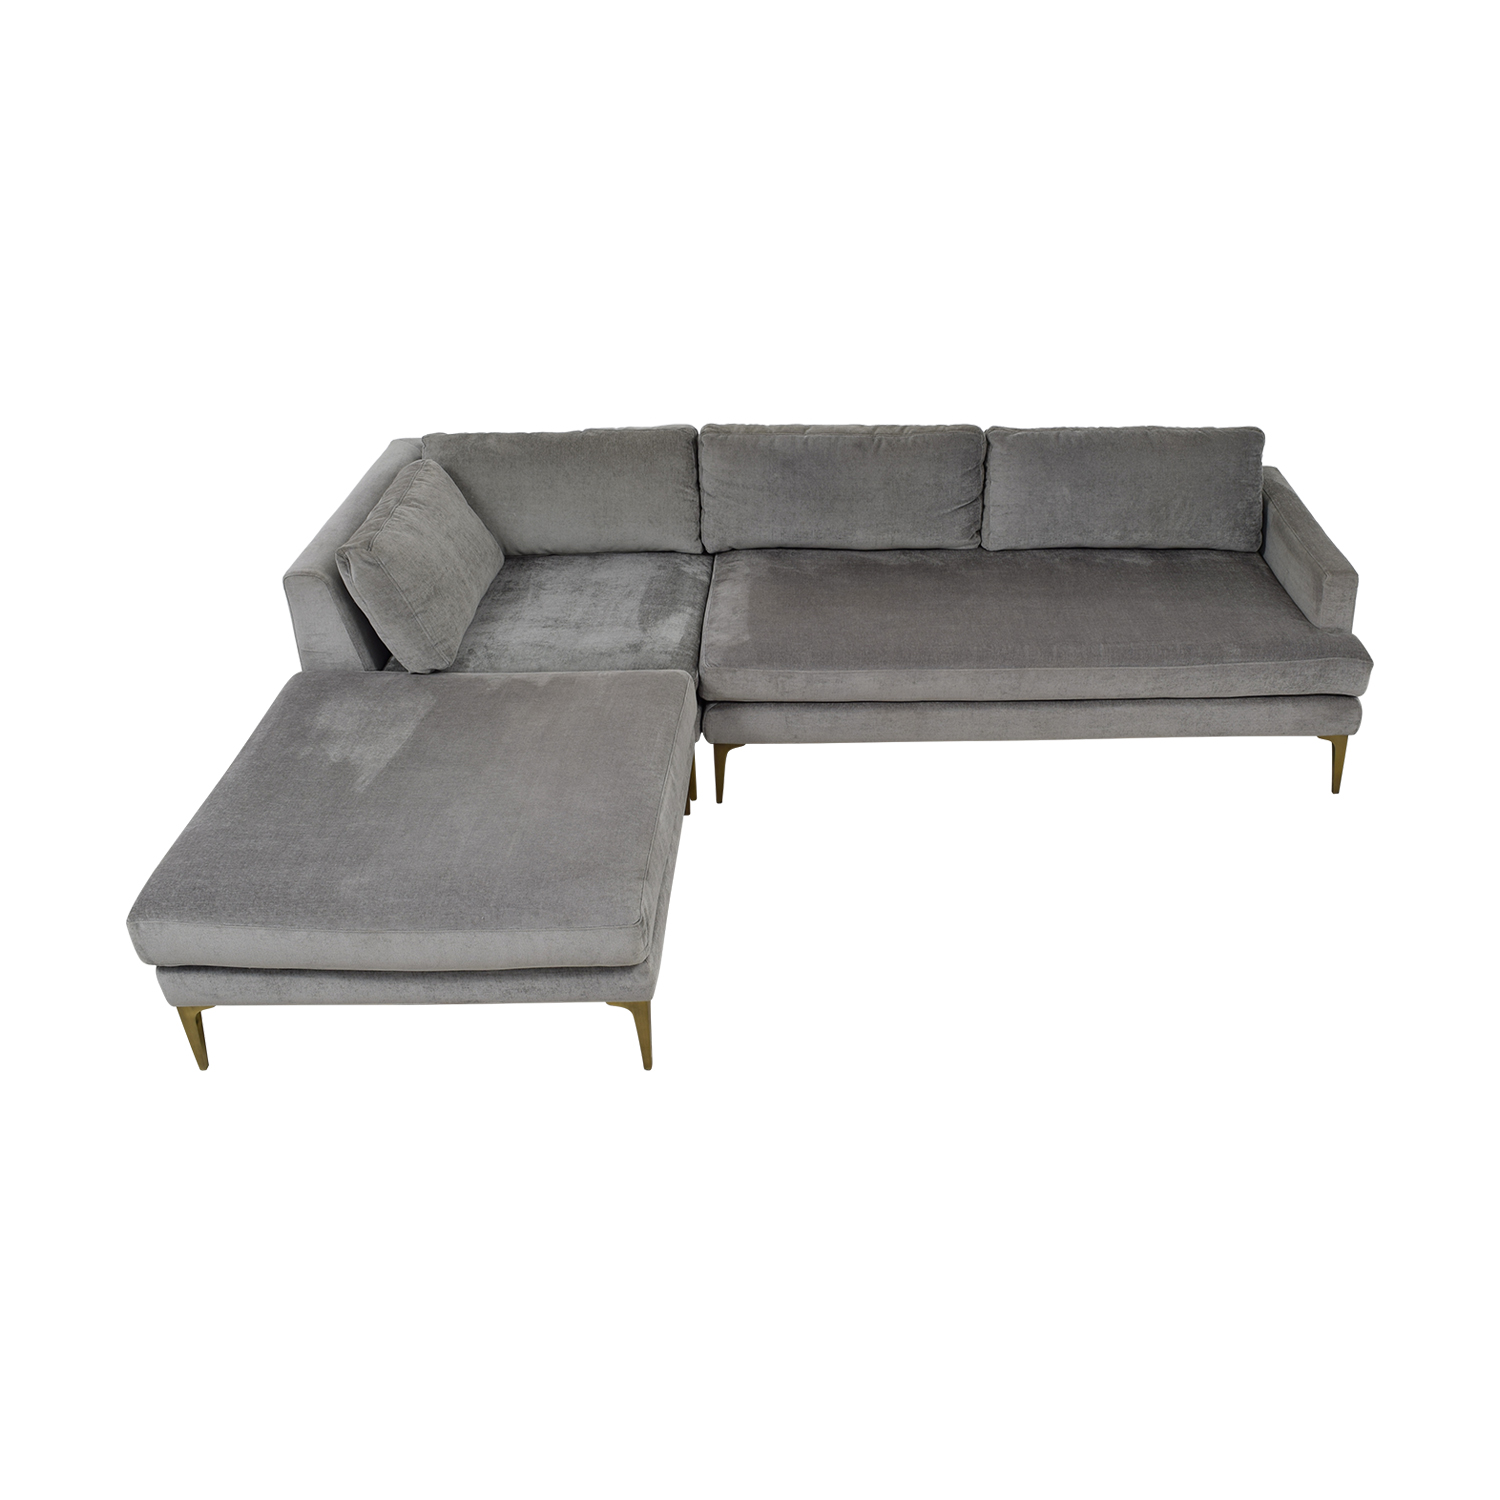 West Elm West Elm Andes Blue Interchangeable Ottoman Chaise Sectional price